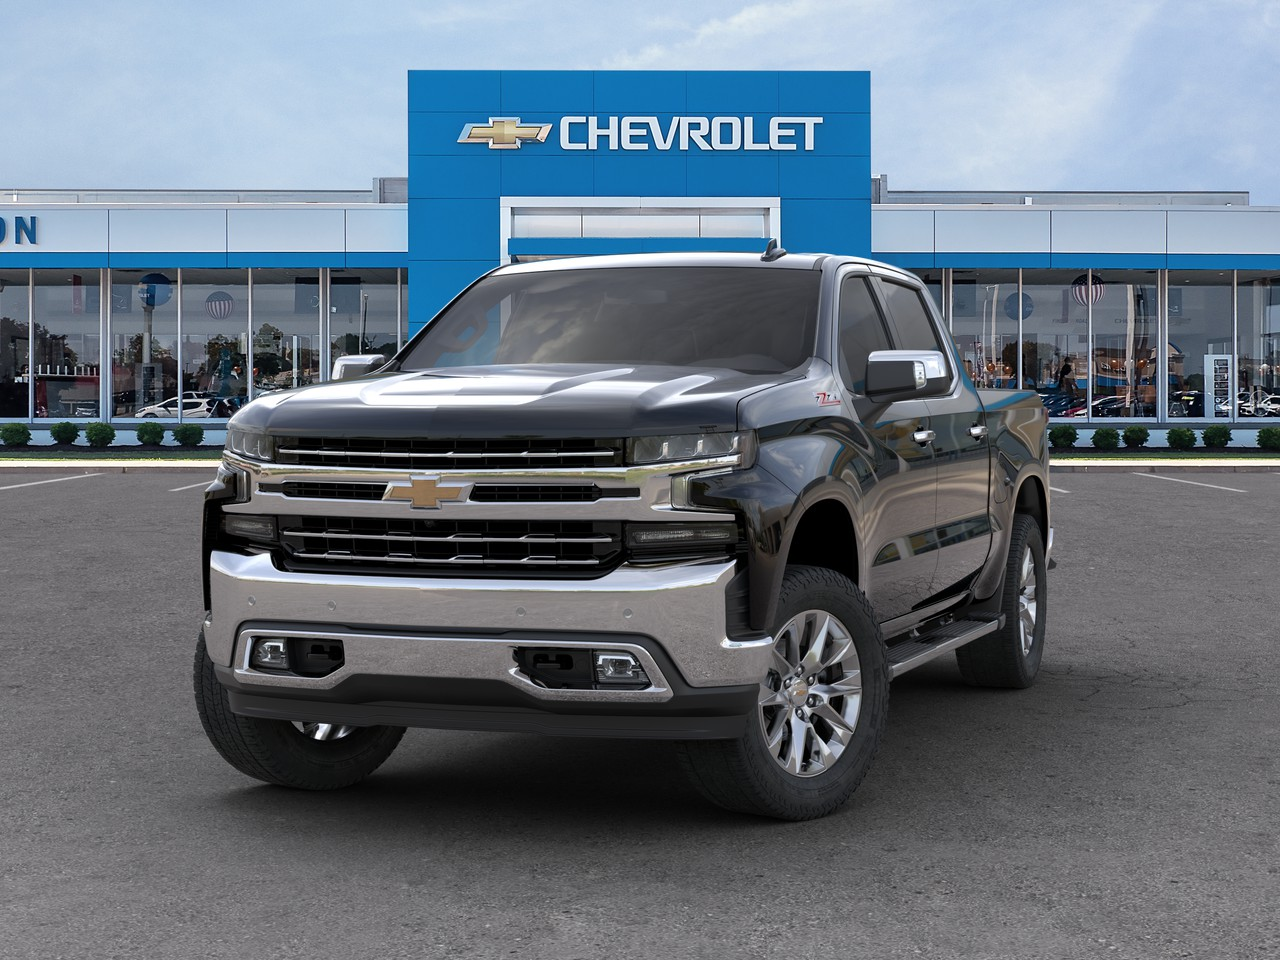 New 2020 Chevrolet Silverado 1500 LTZ FOUR WHEEL DRIVE Trucks